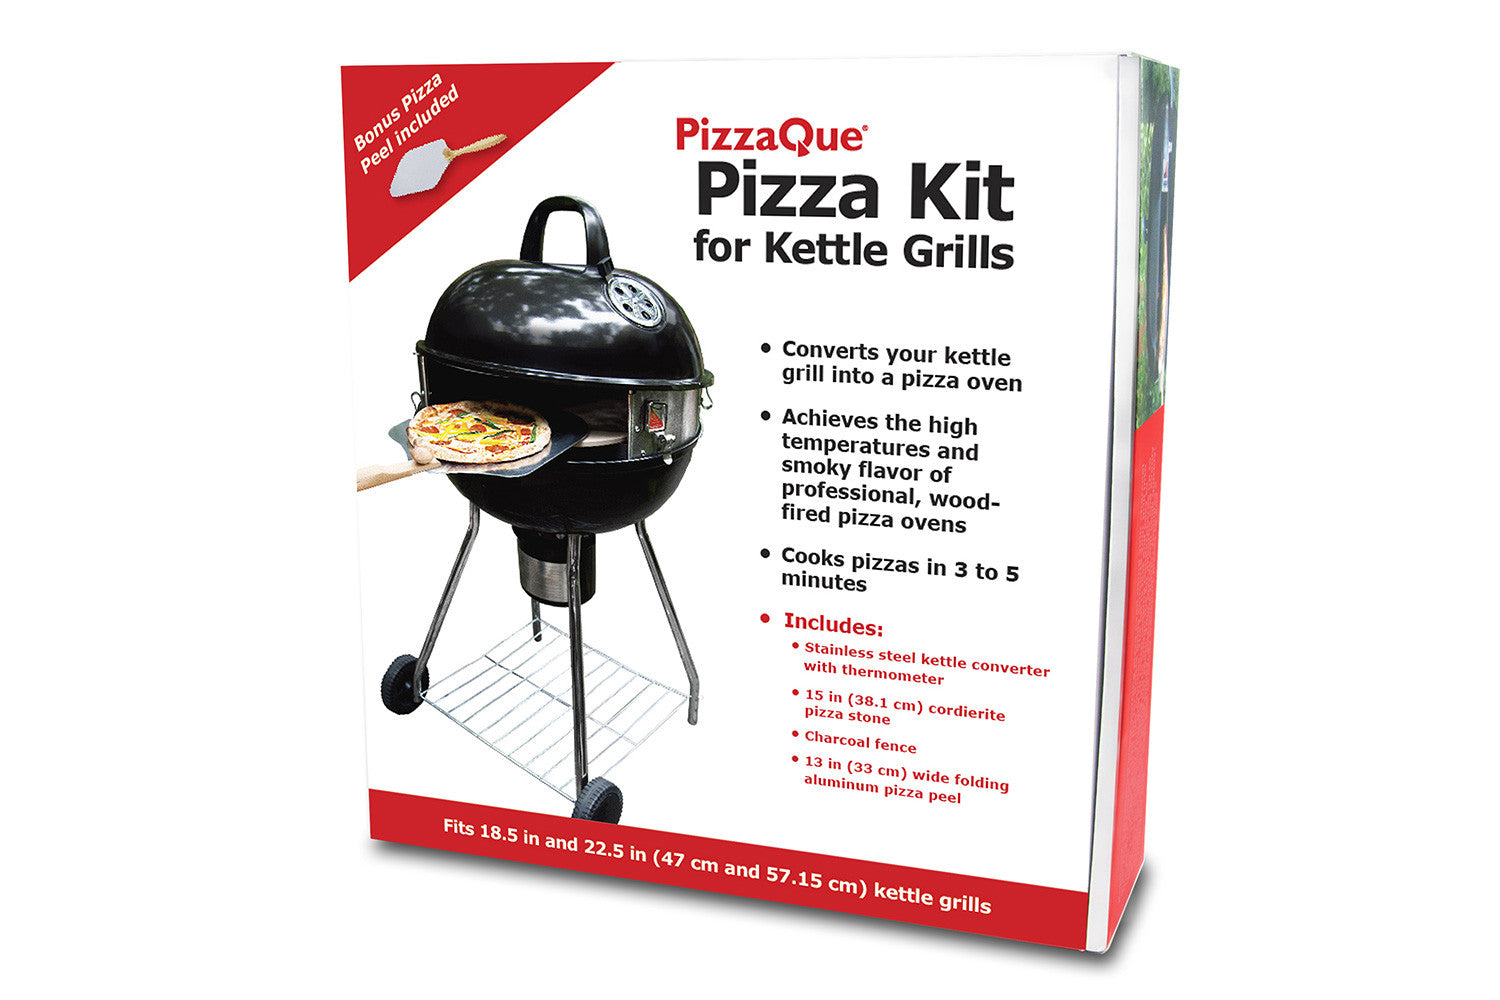 pizzaque pizza kit for kettle grills pizzacraft. Black Bedroom Furniture Sets. Home Design Ideas